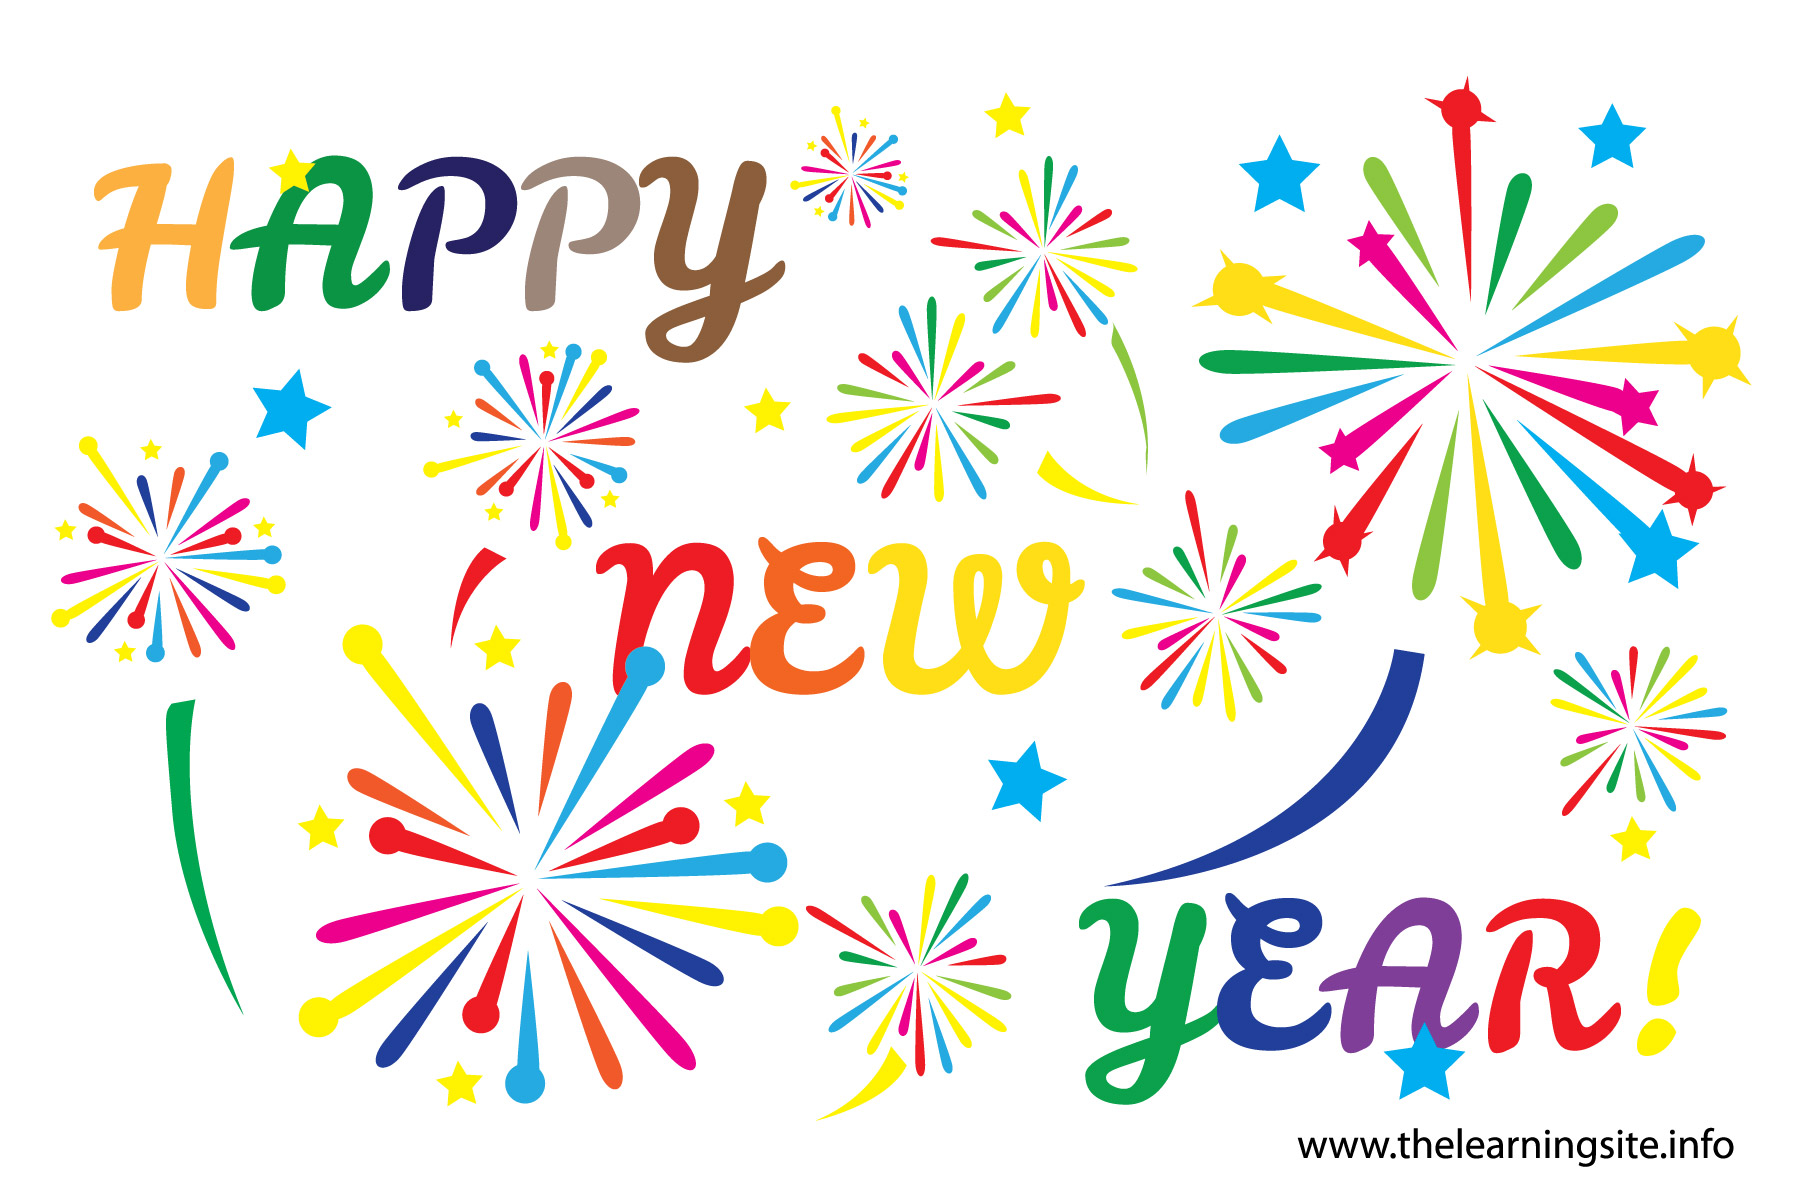 Happy new year clipart clipground happy new year clip art happy new year clip art clip art images m4hsunfo